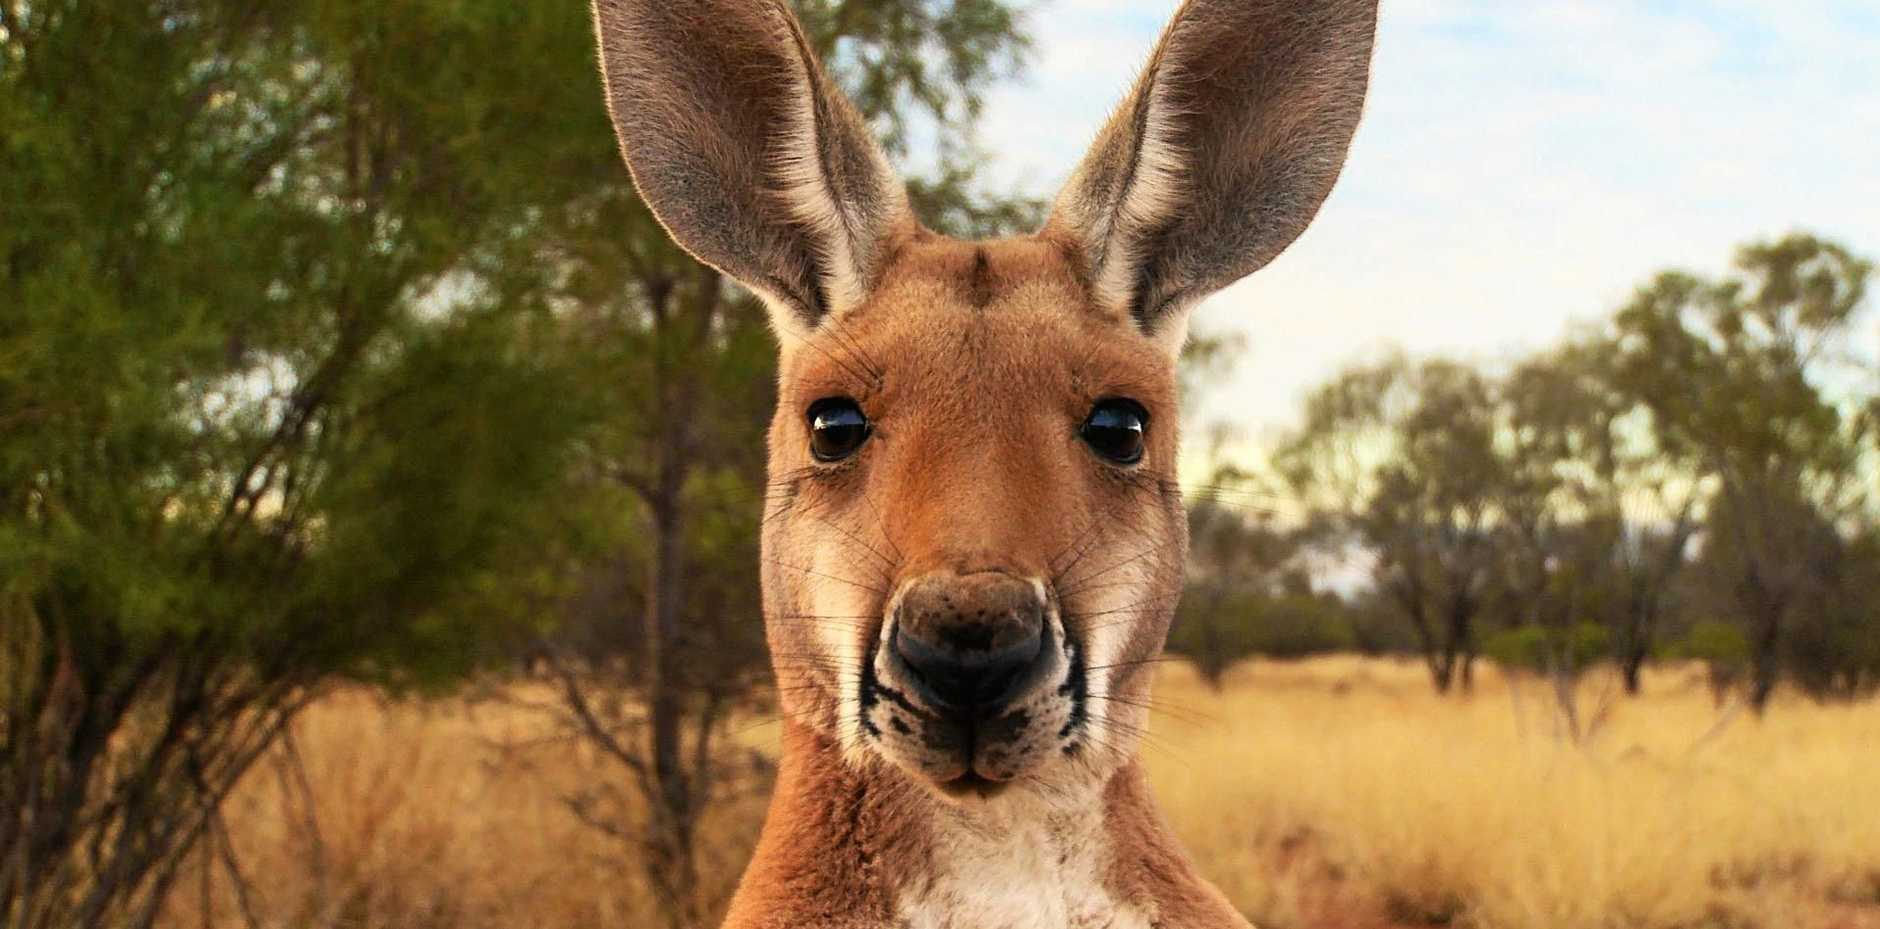 A kangaroo in the documentary Kangaroo: A Love - Hate Story (2017) by Michael and Kate McIntyre.